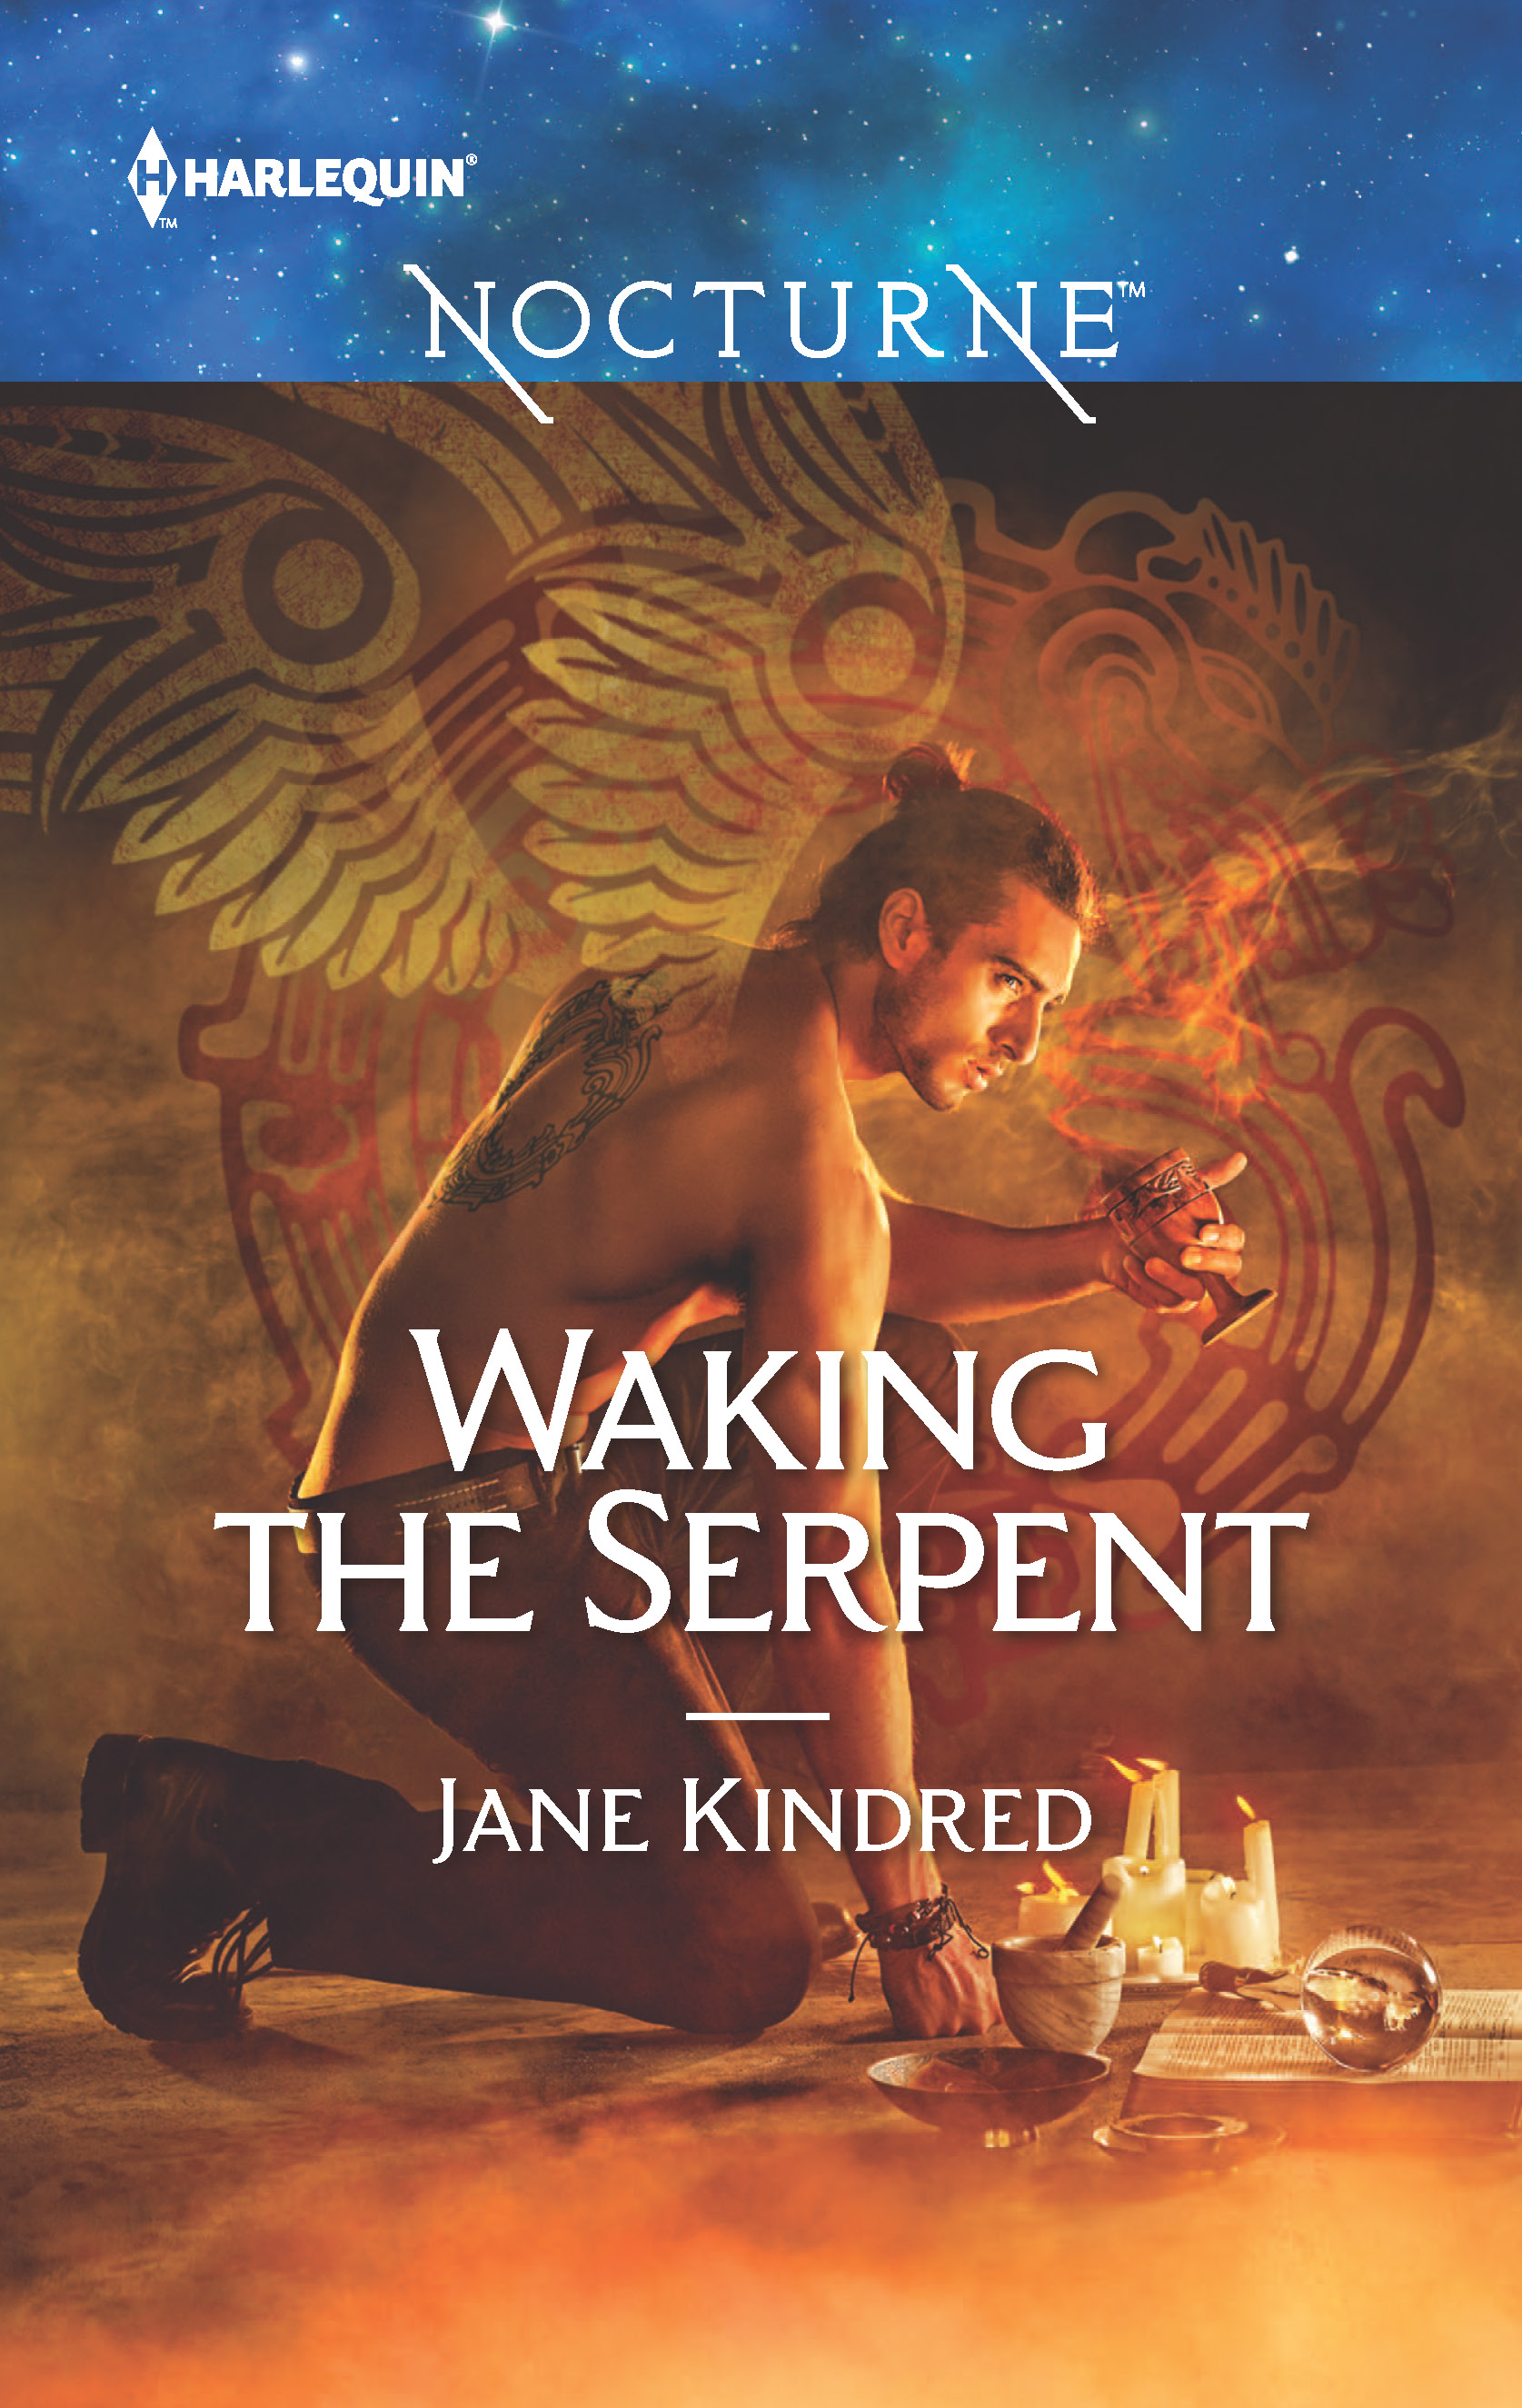 Waking the Serpent